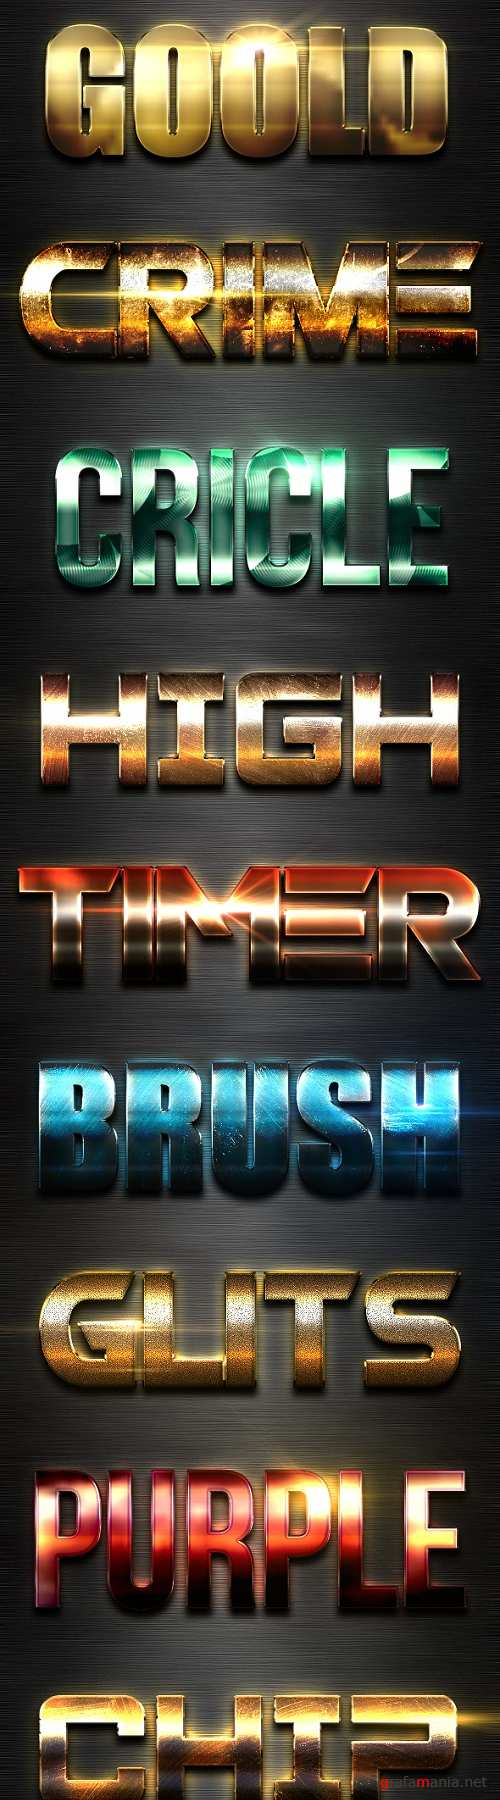 New 10 Extra Light Text Effects Vol.9  - 19516908